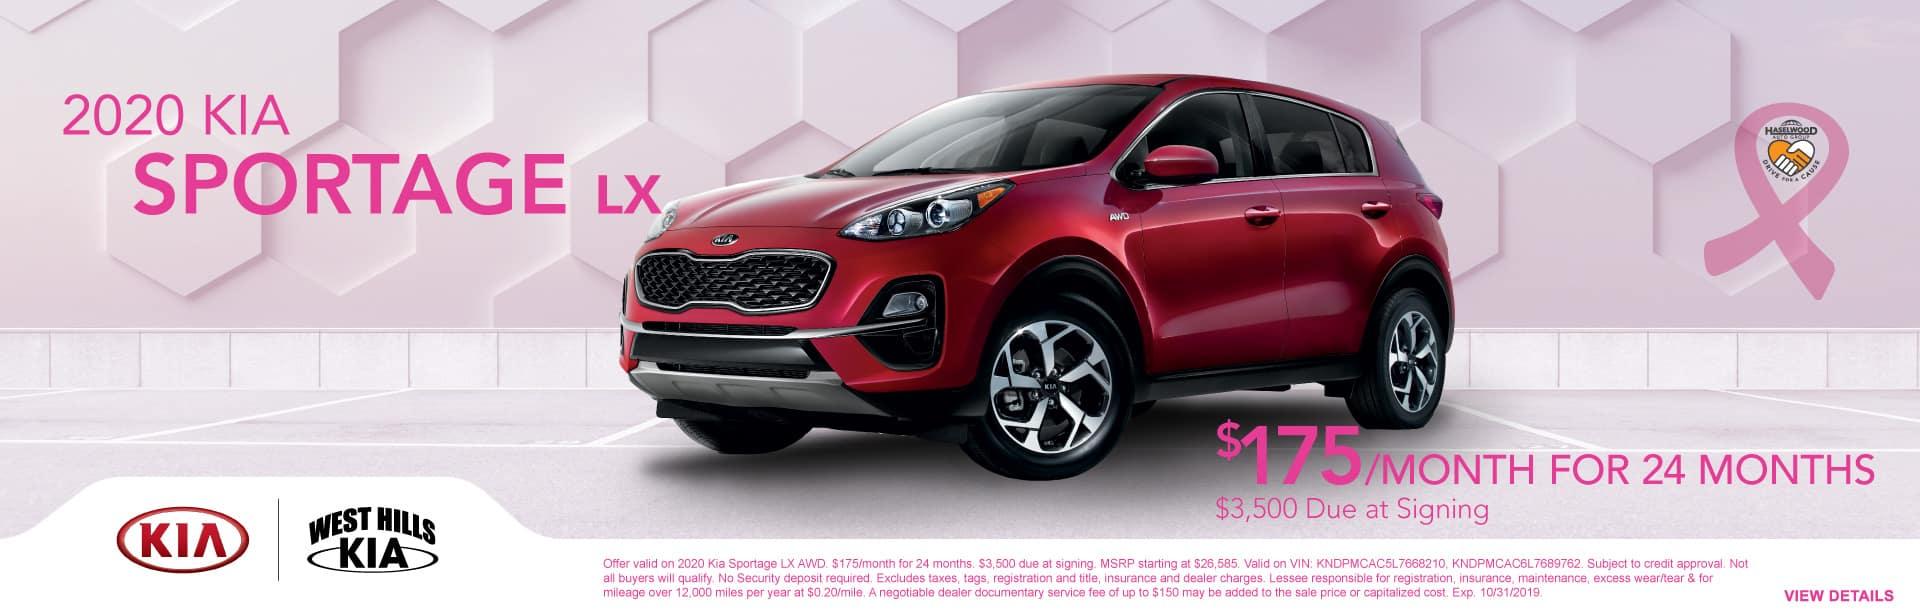 2020 Kia Sportage LX AWD (featured vehicle)  $175/month for 24 months  $3,500 Due at Signing   Offer valid on 2020 Kia Sportage LX AWD. $175/month for 24 months. $3,500 due at signing. MSRP starting at $26,585. Valid on VIN: KNDPMCAC5L7668210, KNDPMCAC6L7689762. Subject to credit approval. Not all buyers will qualify. No Security deposit required. Excludes taxes, tags, registration and title, insurance and dealer charges. Lessee responsible for registration, insurance, maintenance, excess wear/tear & for mileage over 12,000 miles per year at $0.20/mile. A negotiable dealer documentary service fee of up to $150 may be added to the sale price or capitalized cost. Exp. 10/31/2019.